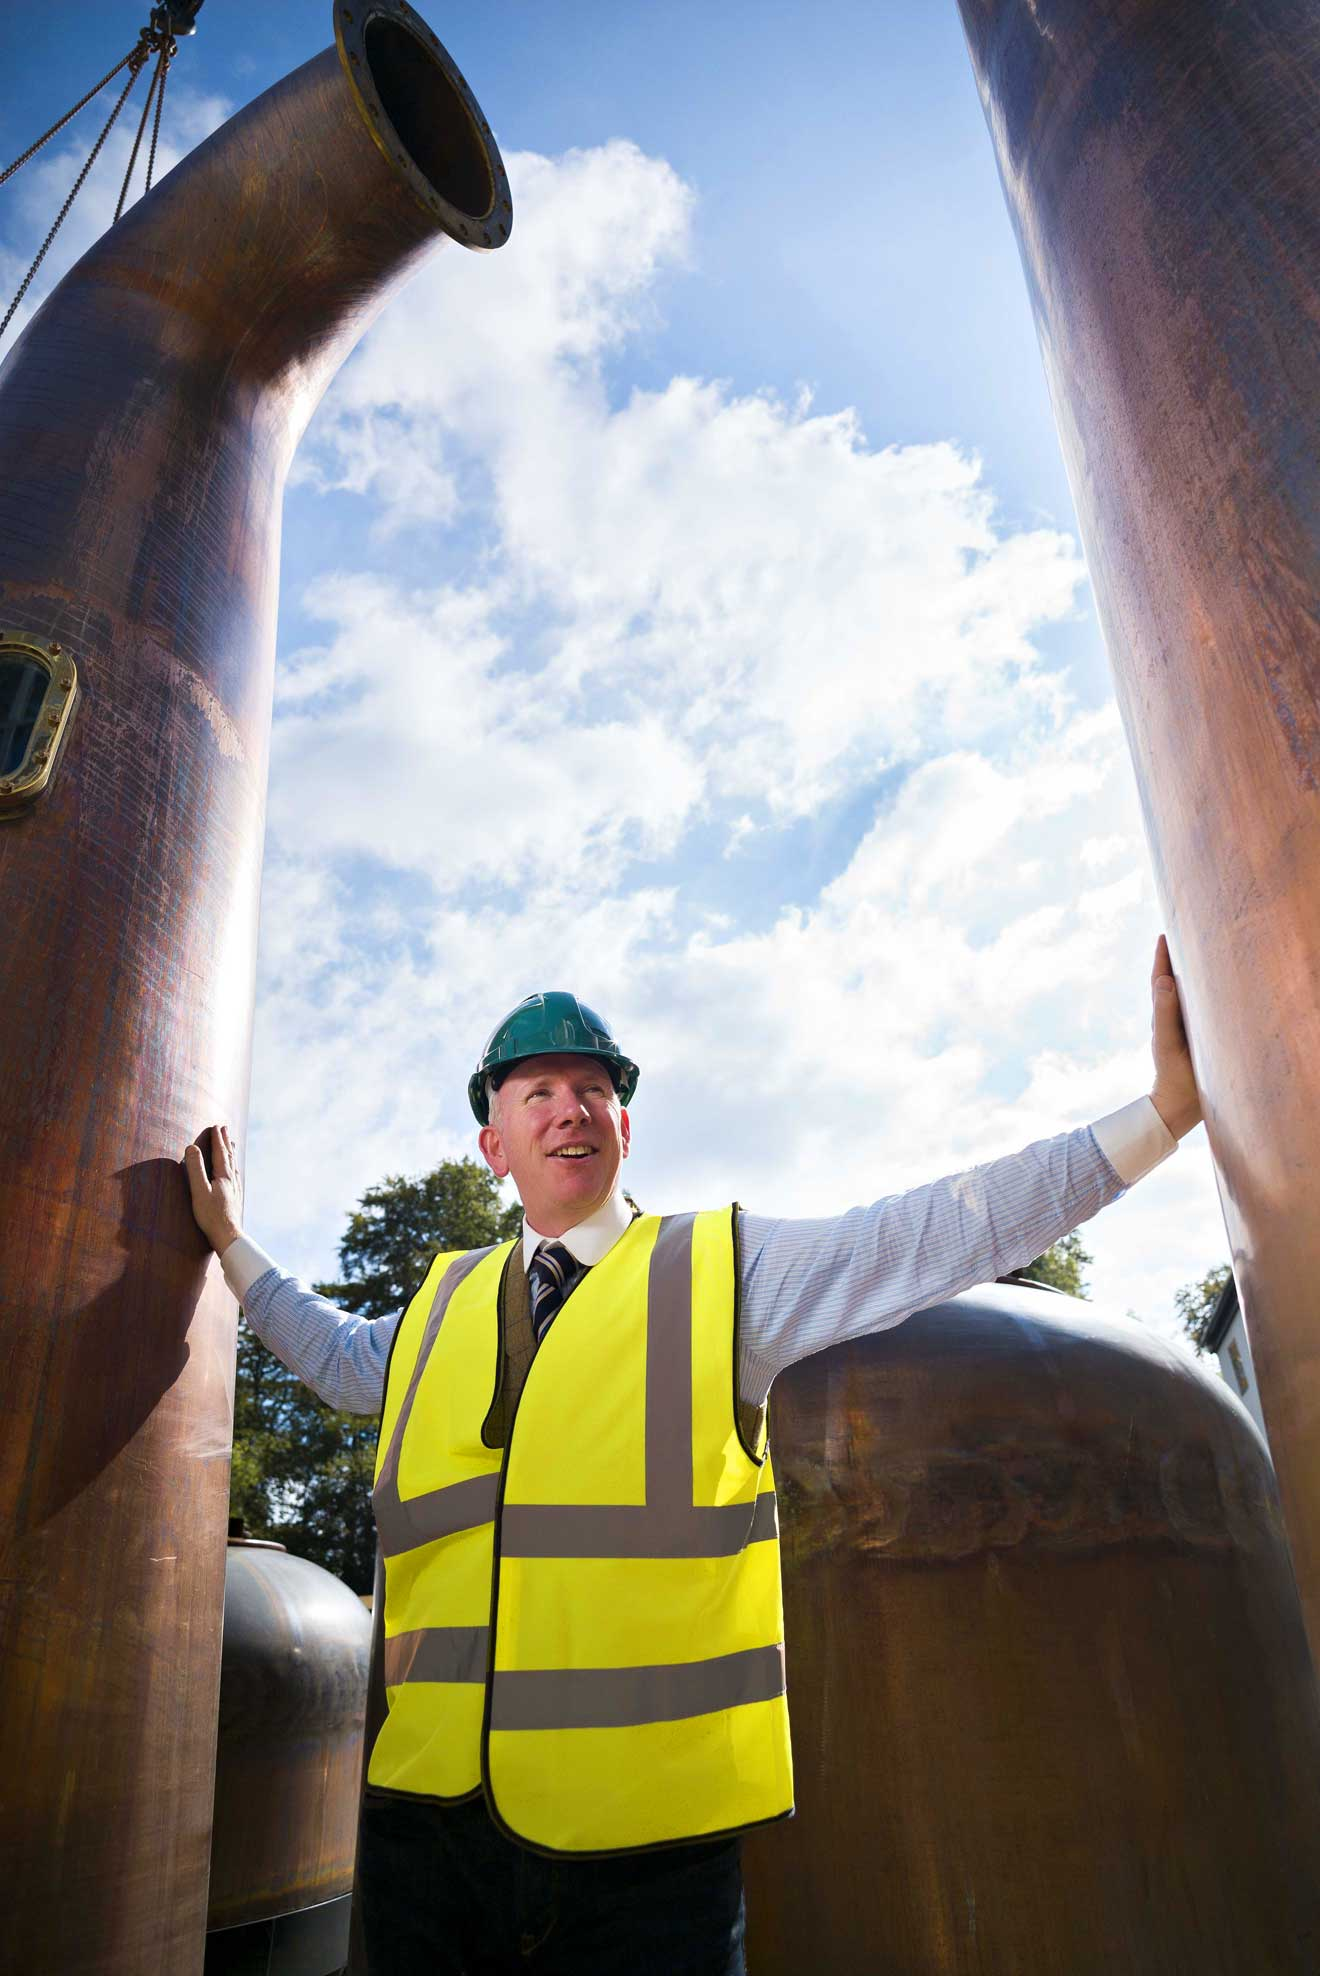 Walsh Whiskey Distillery Welcomes Arrival of Giant Whiskey Pots